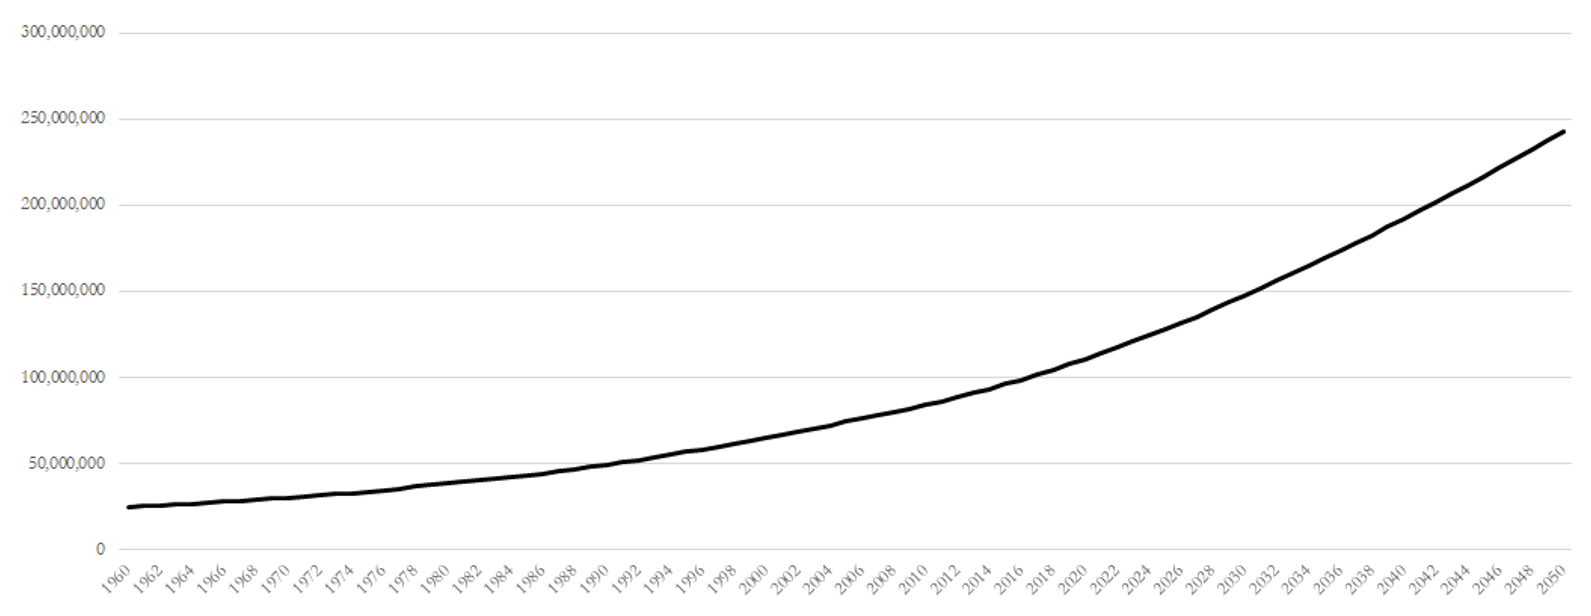 Figure 1: Nigeria's working-age population (15-64) is set to increase 125 percent by 2050